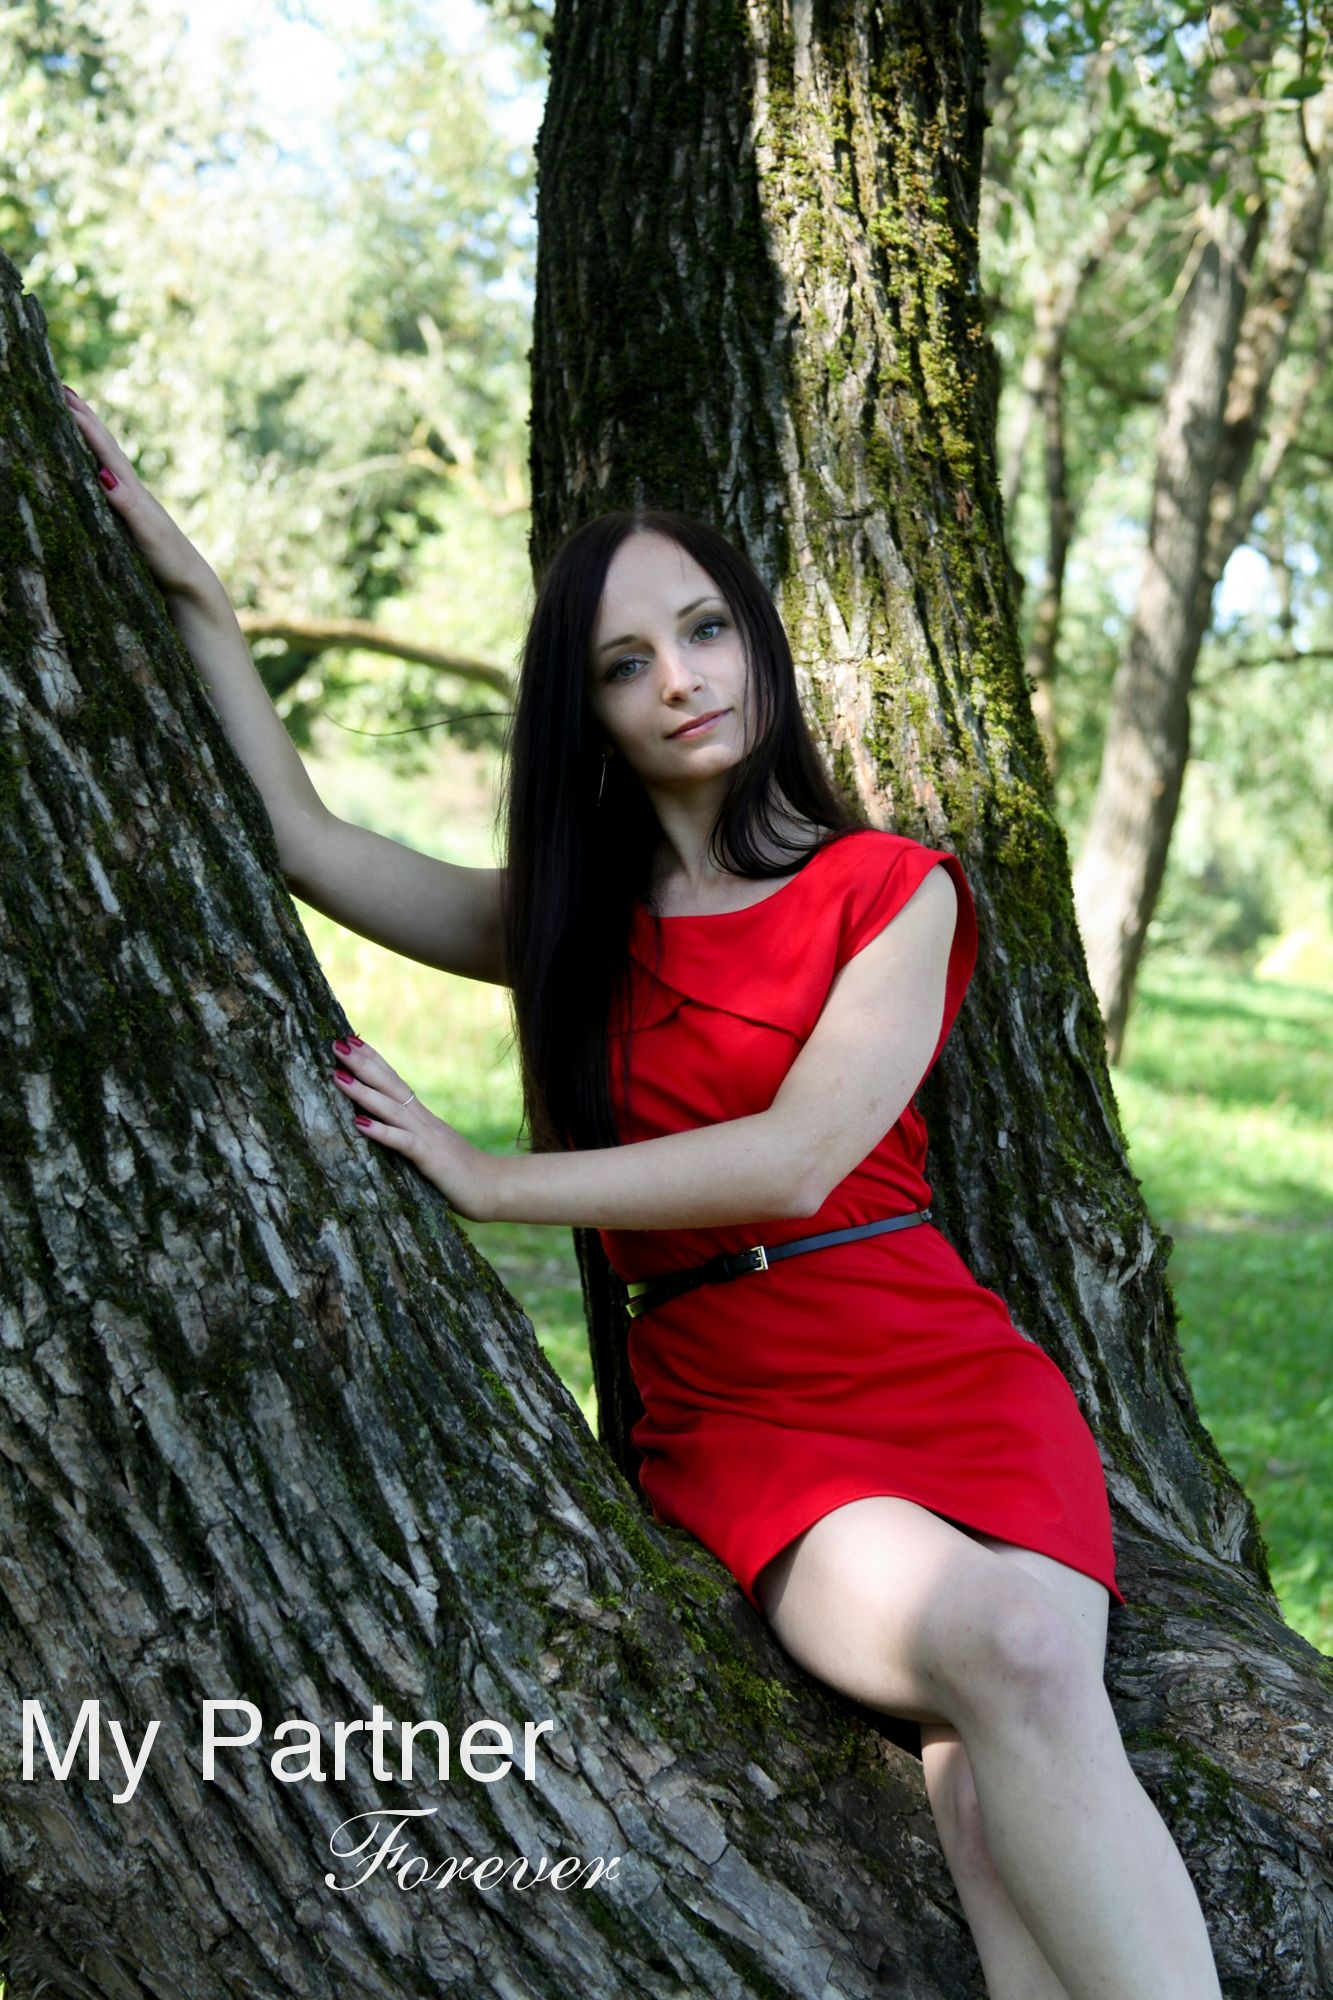 Free dating sites for singles in europe